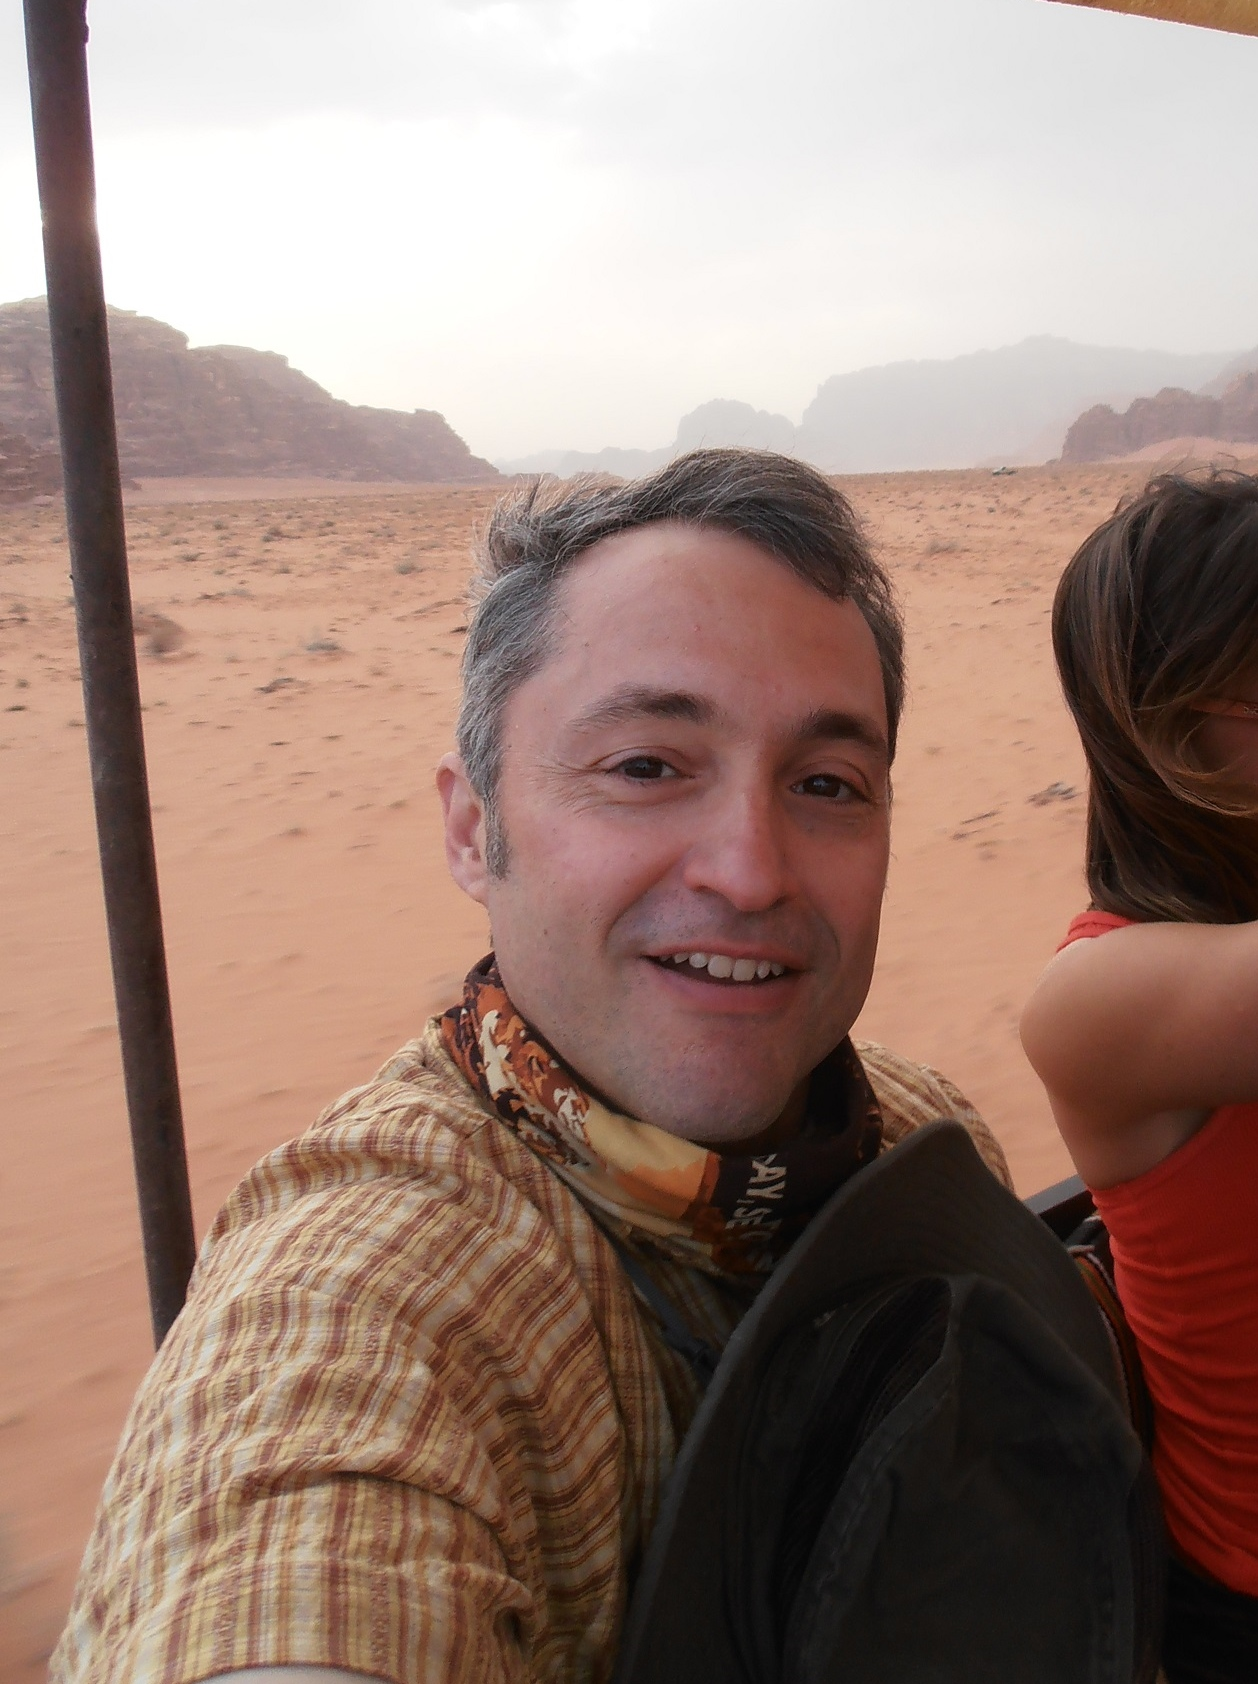 Raul from ilivetotravel.  A jeep ride through Wadi Rum in Jordan.